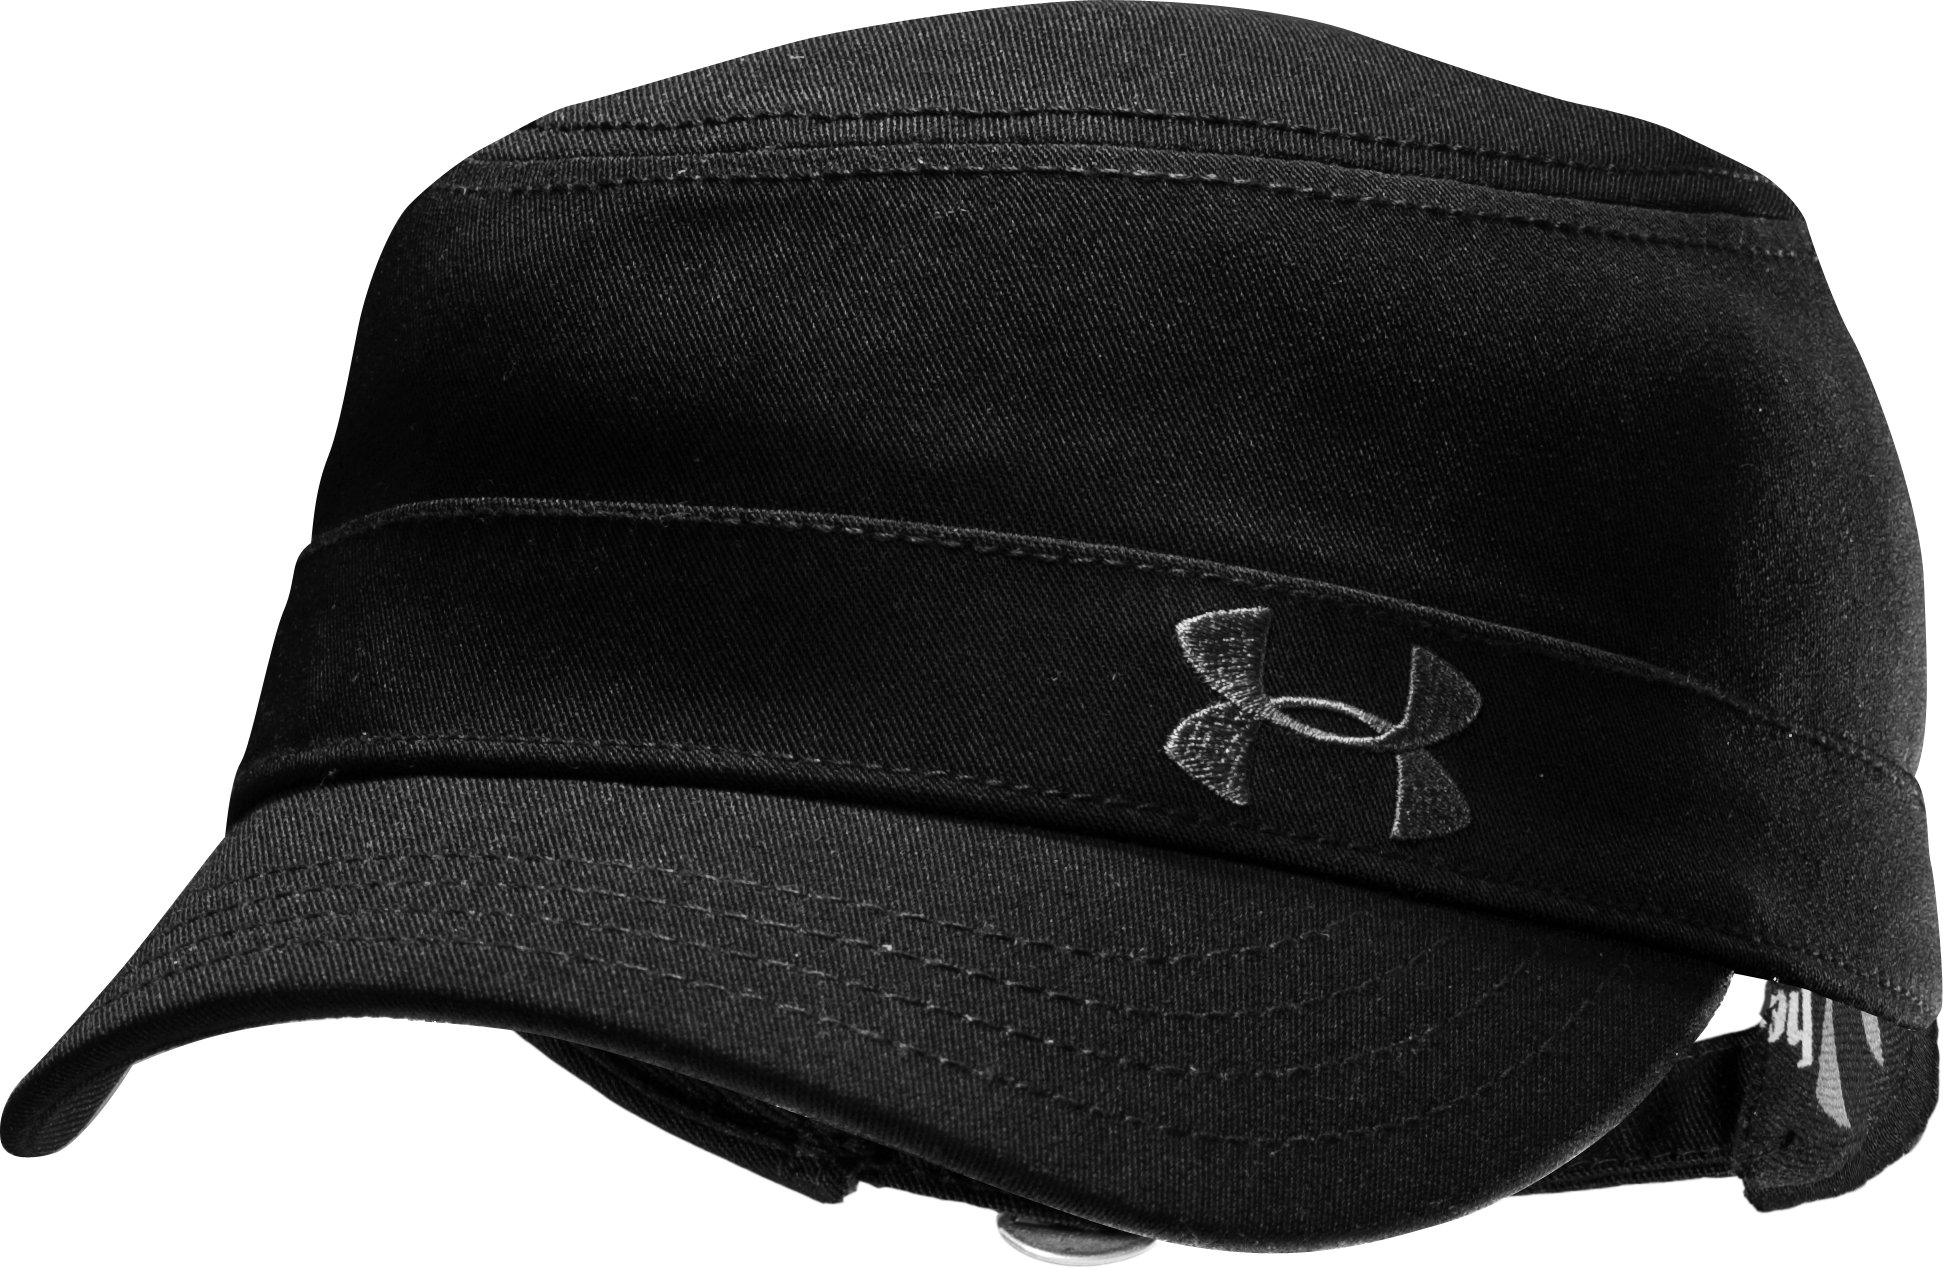 Women's Solid Versa Military Cap, Black